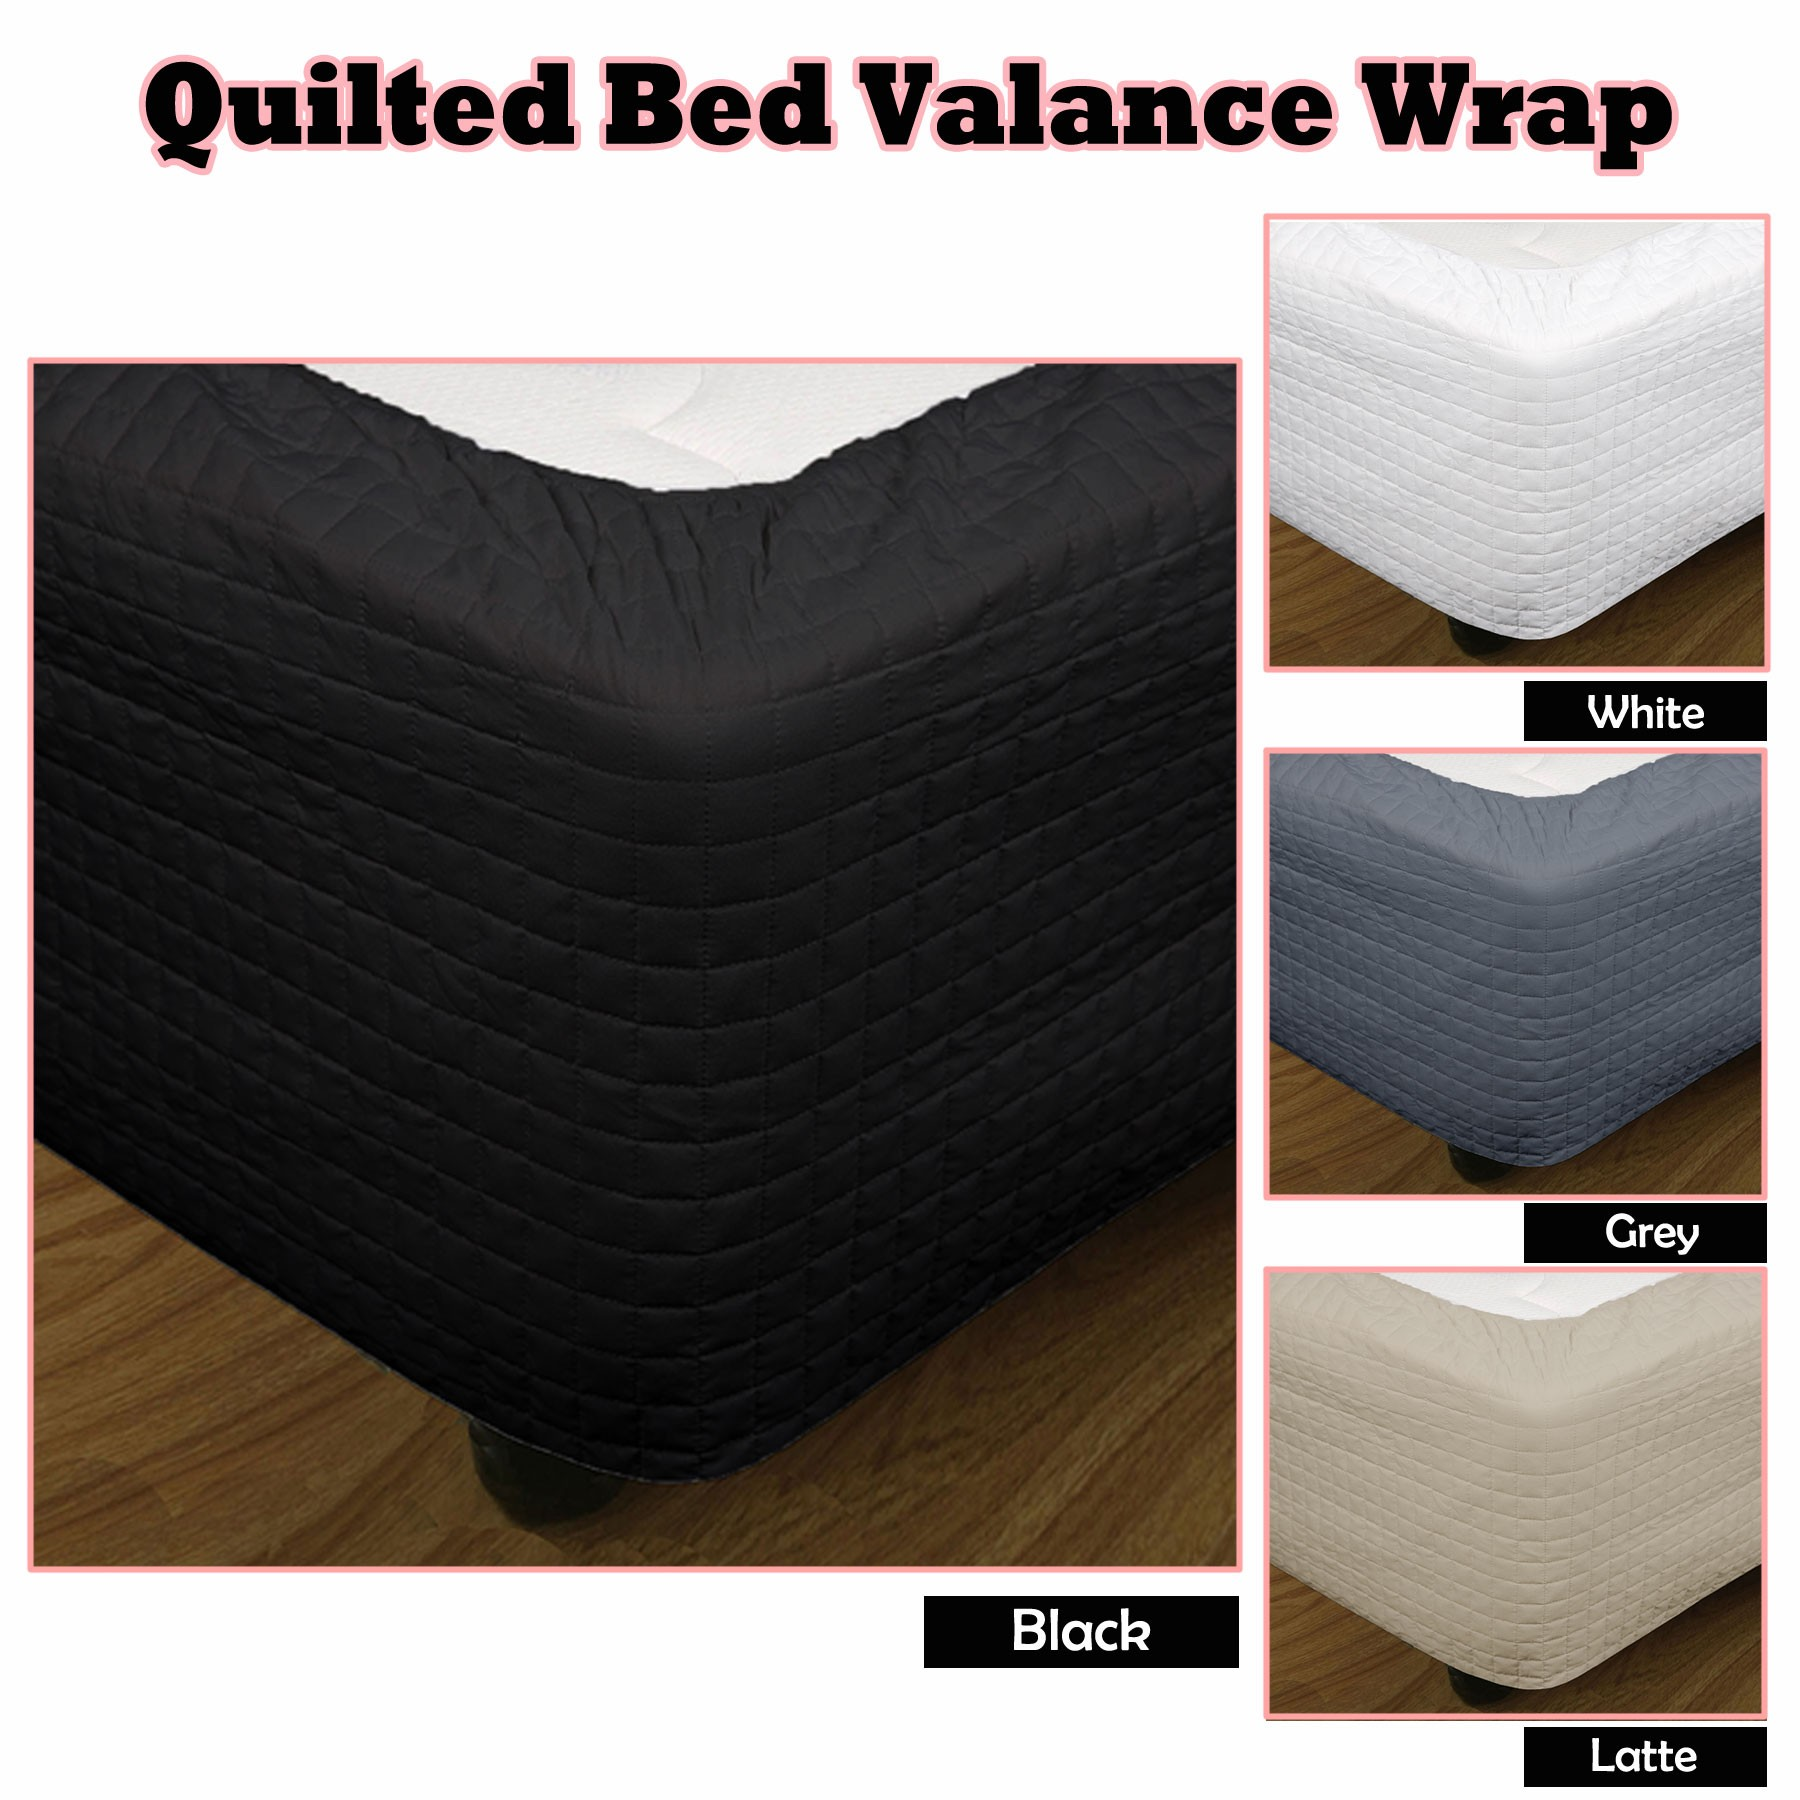 Elastic Bed Skirt | Bed Bath Beyond Bed Skirt | Bed Skirts Queen